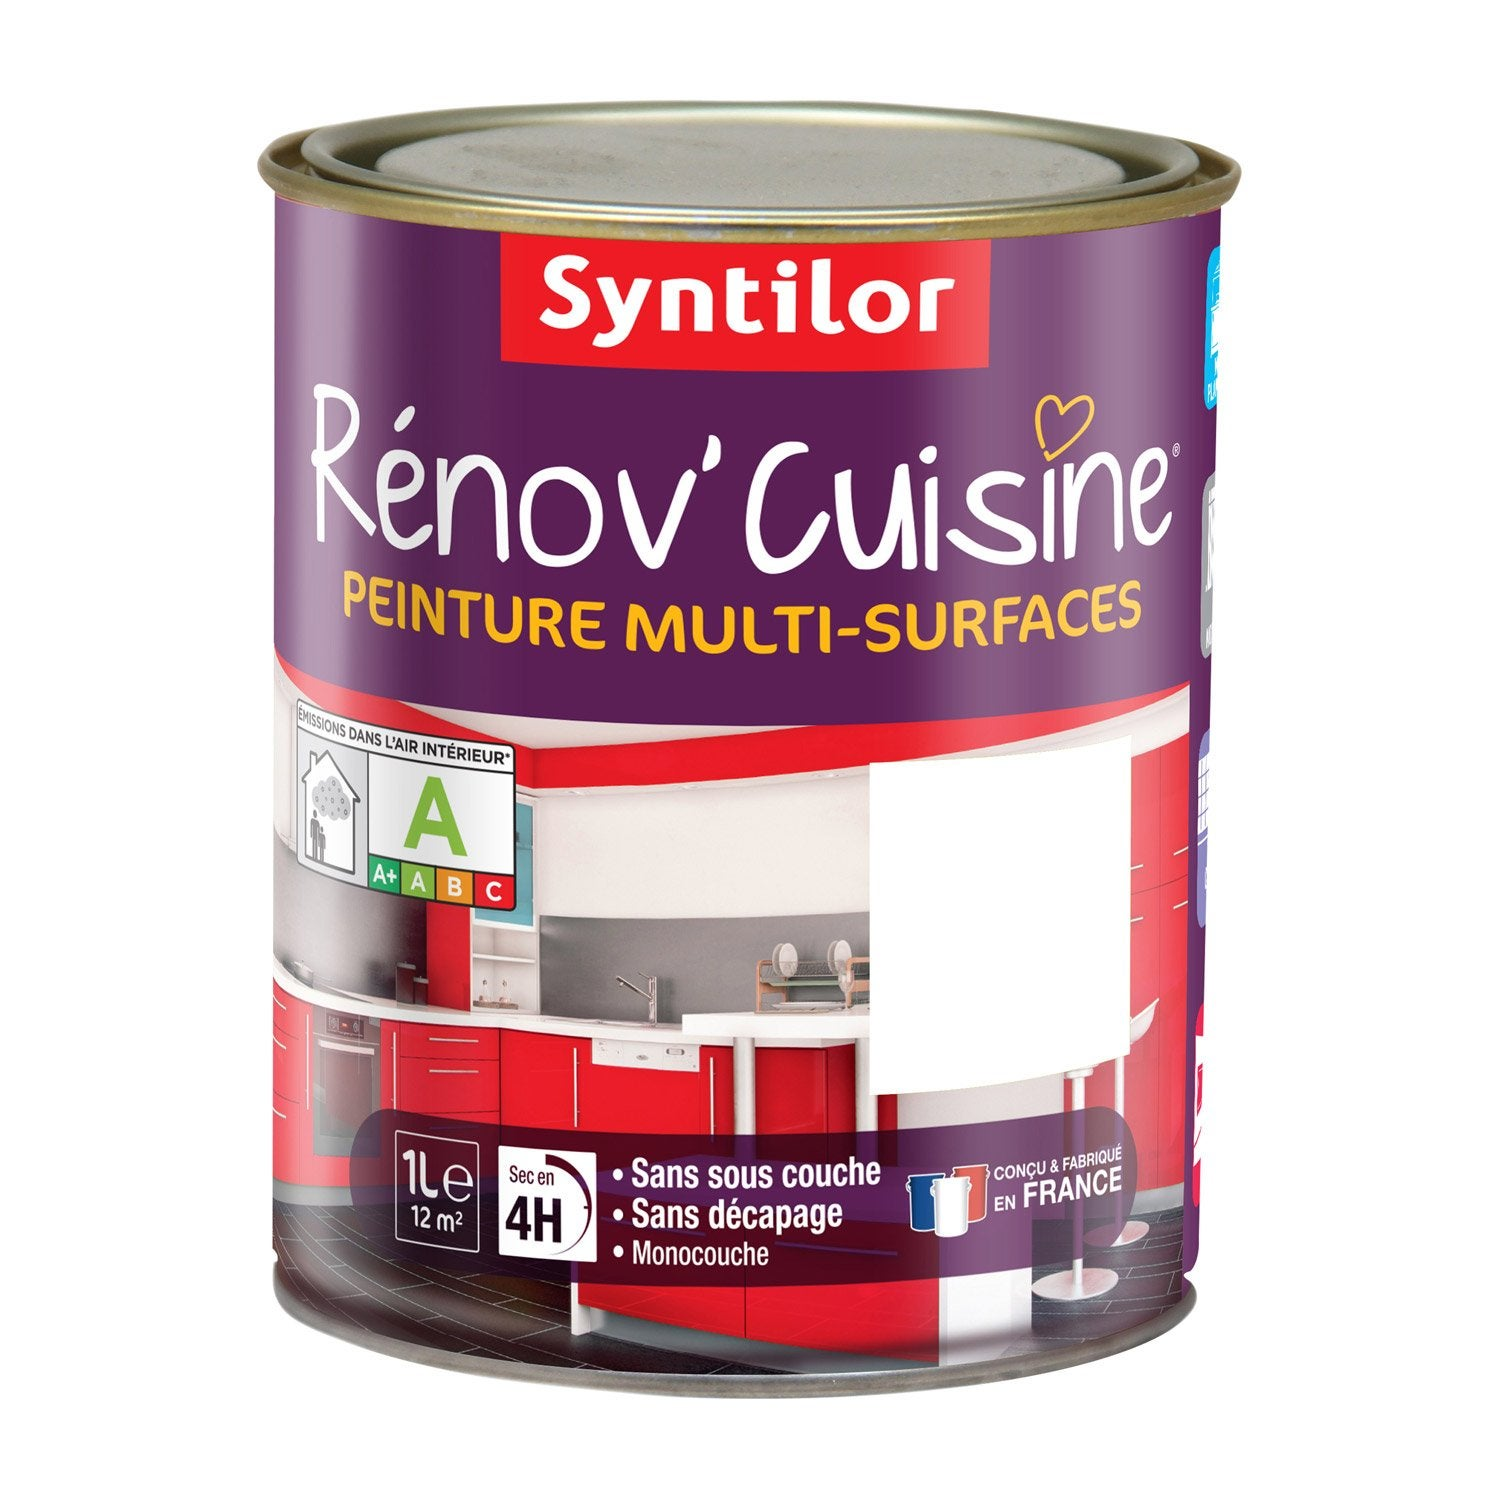 peinture de r novation r nov 39 cuisine syntilor blanc 1 l leroy merlin. Black Bedroom Furniture Sets. Home Design Ideas